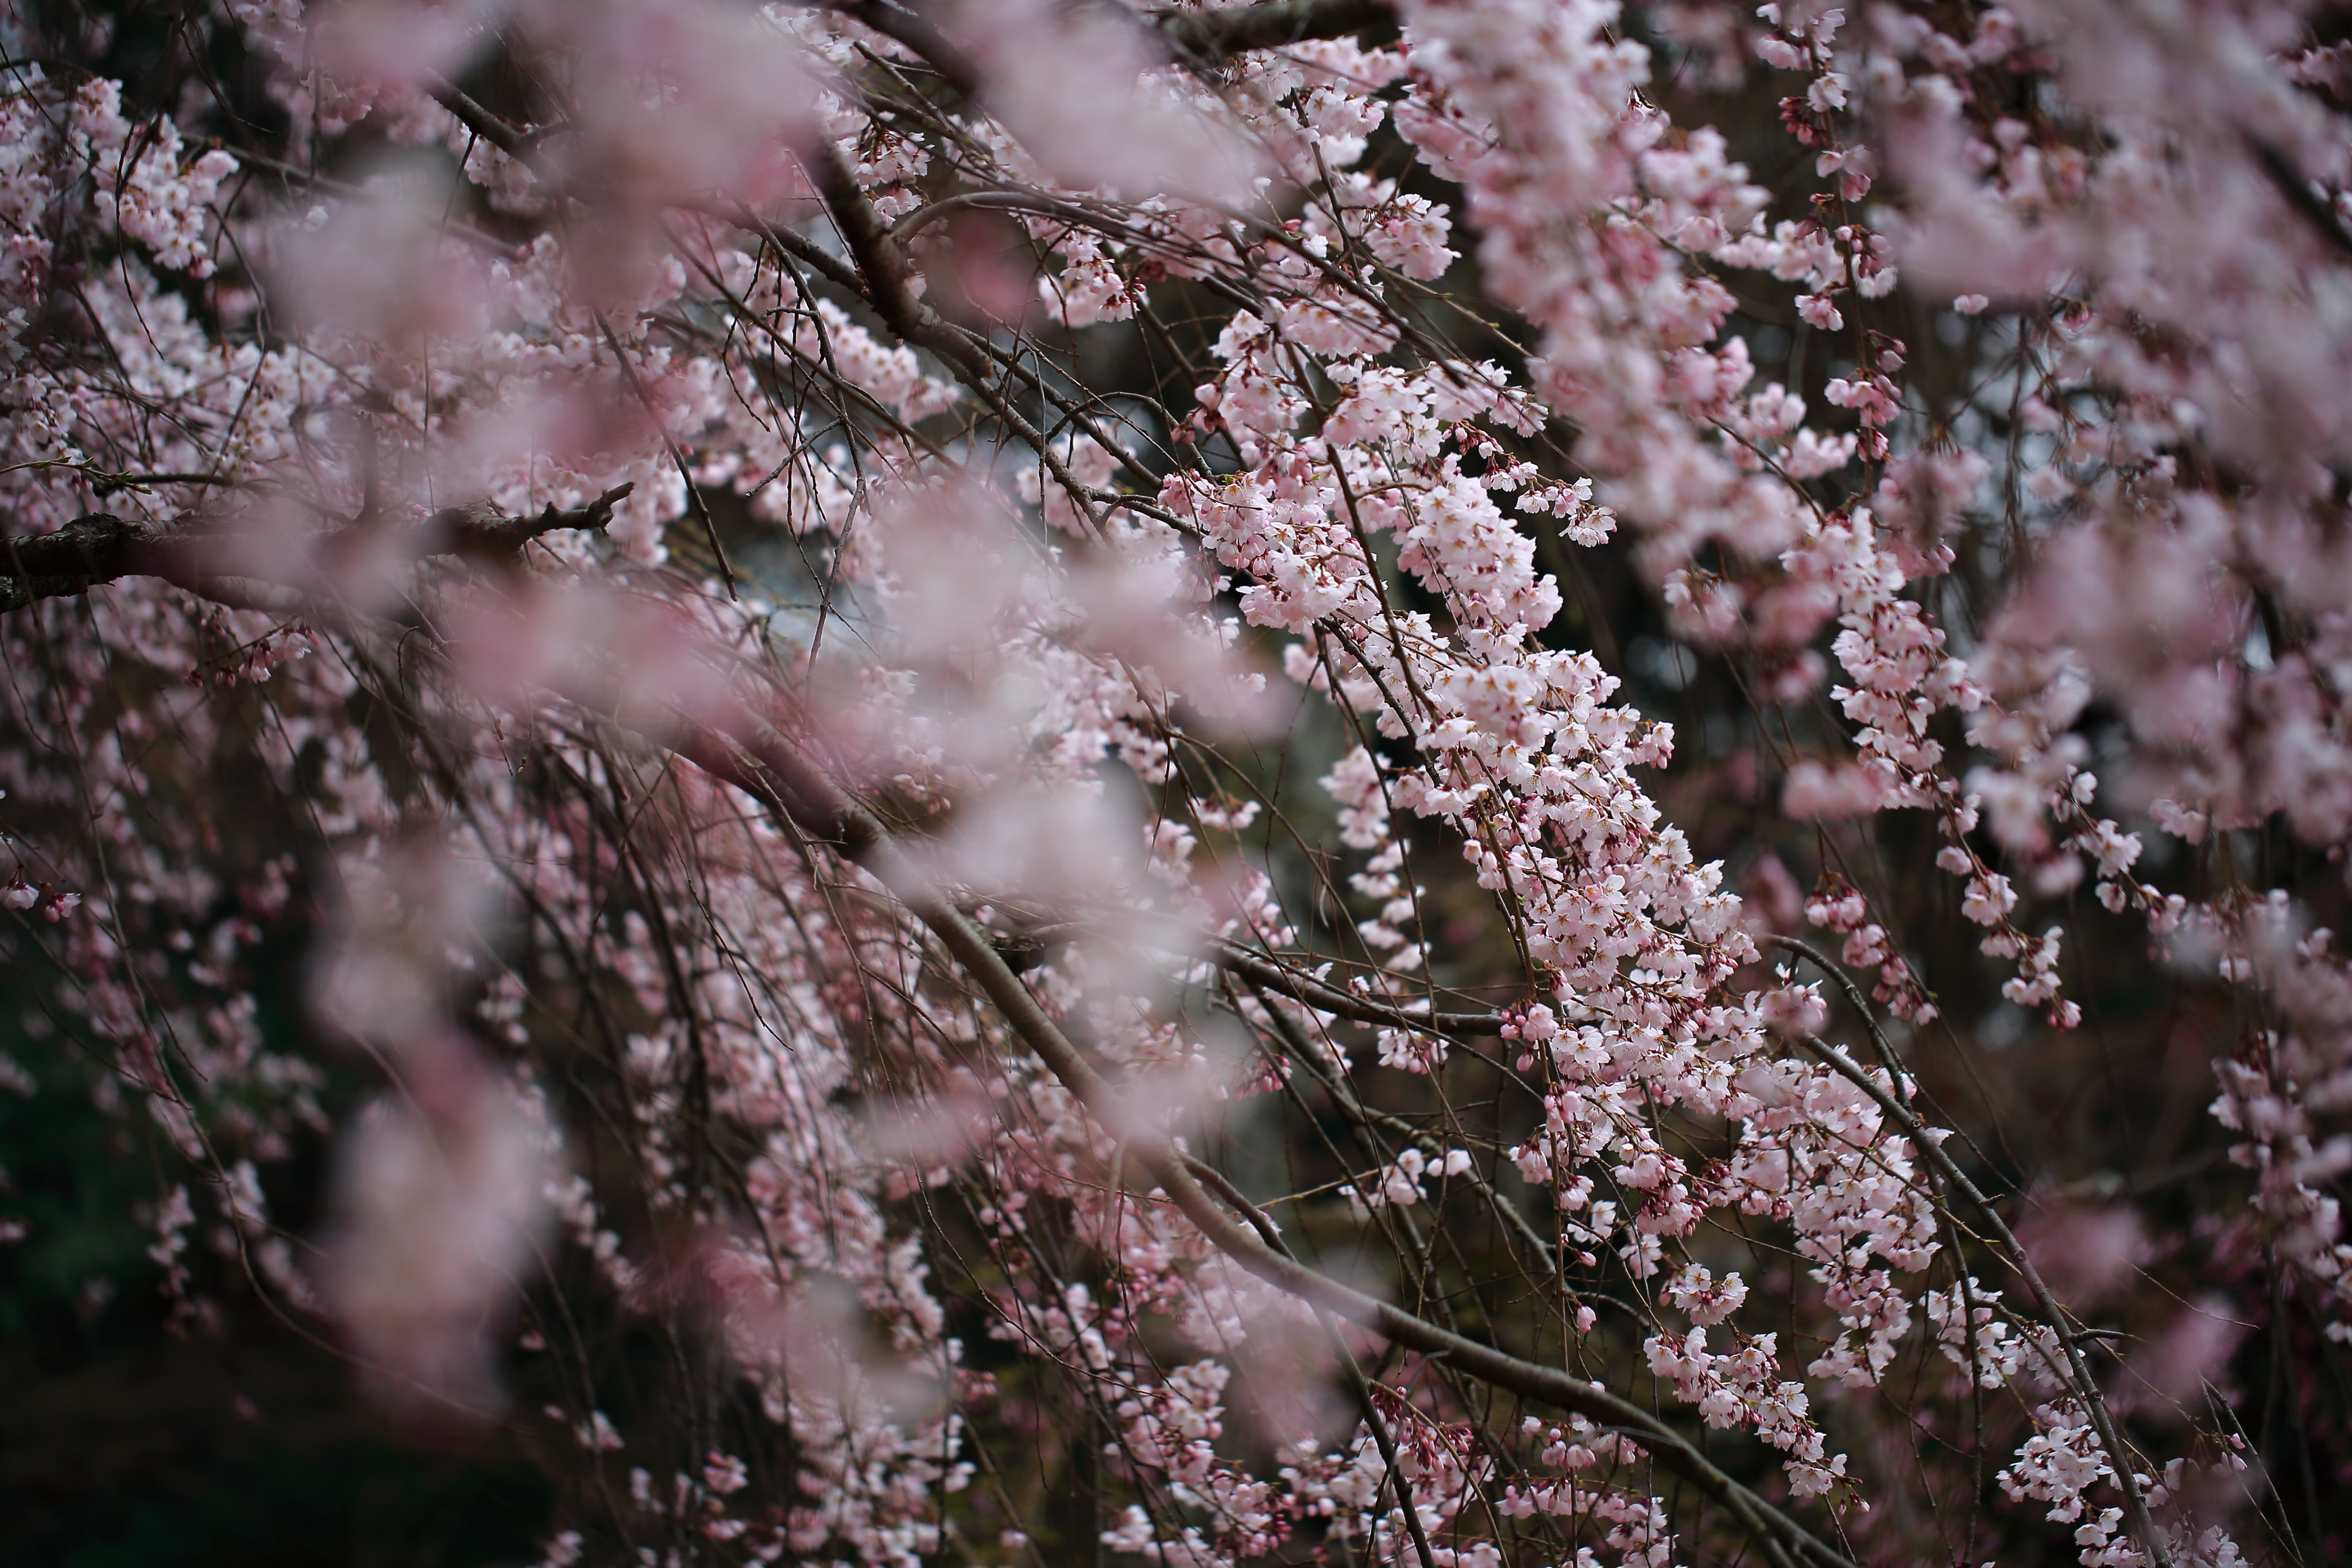 Pink blossom branches in full bloom in Spring, Kyoto Gyoen Garden